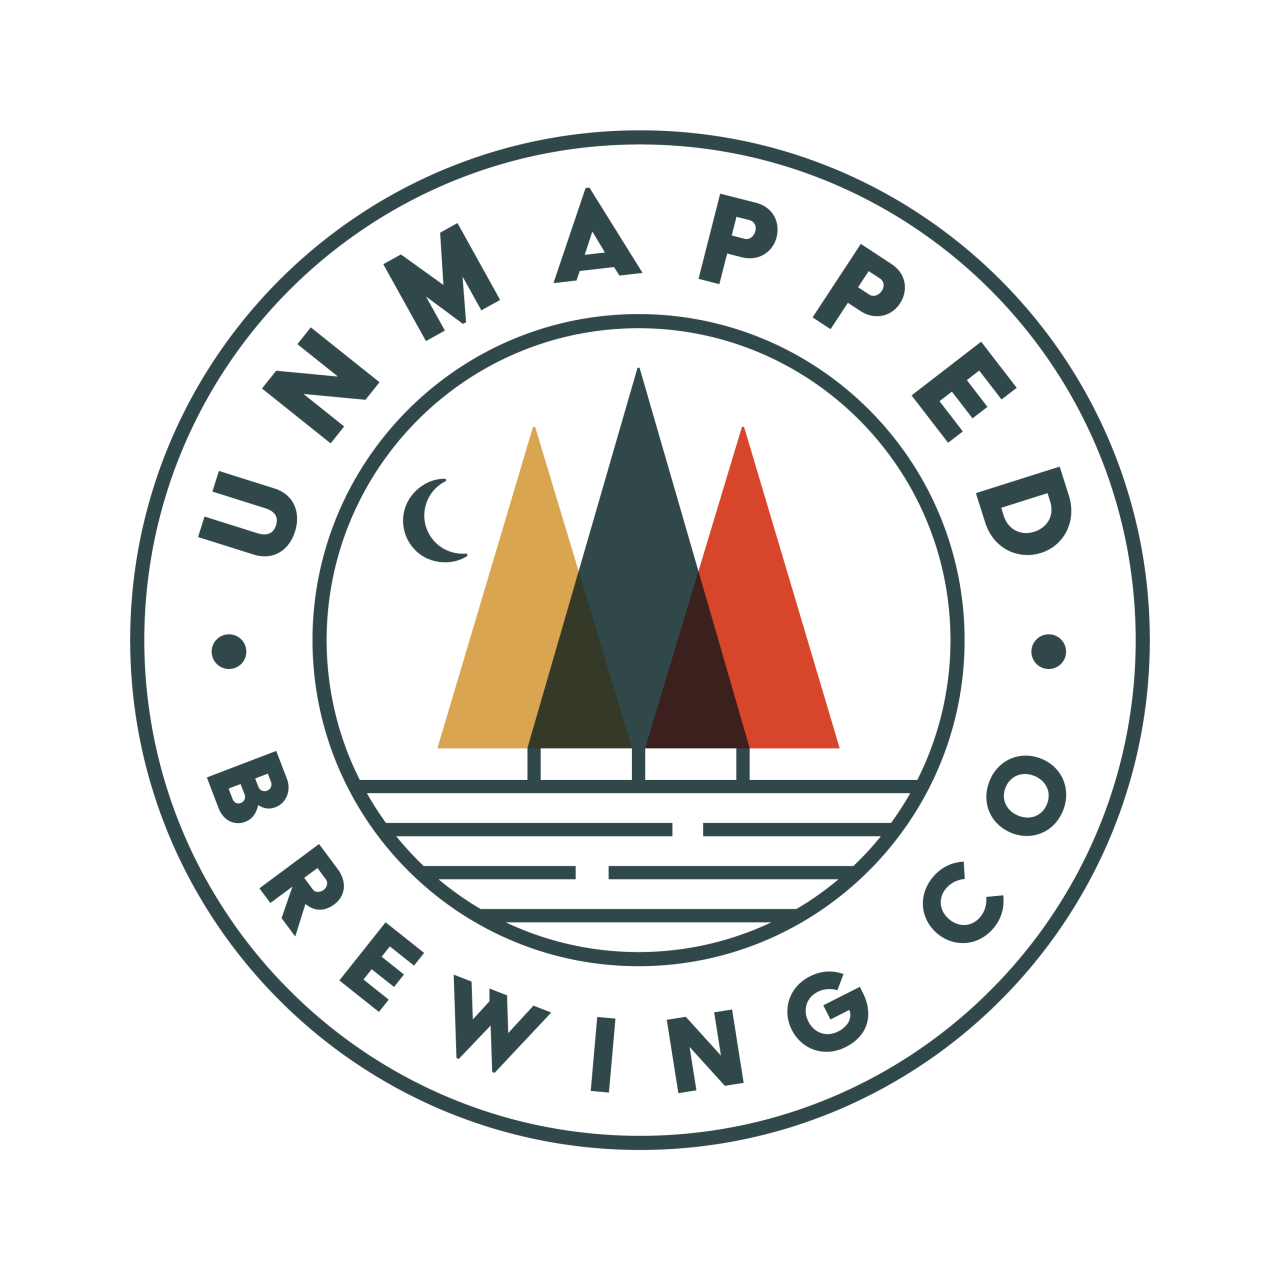 https://www.mncraftbrew.org/wp-content/uploads/2018/07/Unmapped_Logo_CMYK_ColorTrees-1280x1280.png